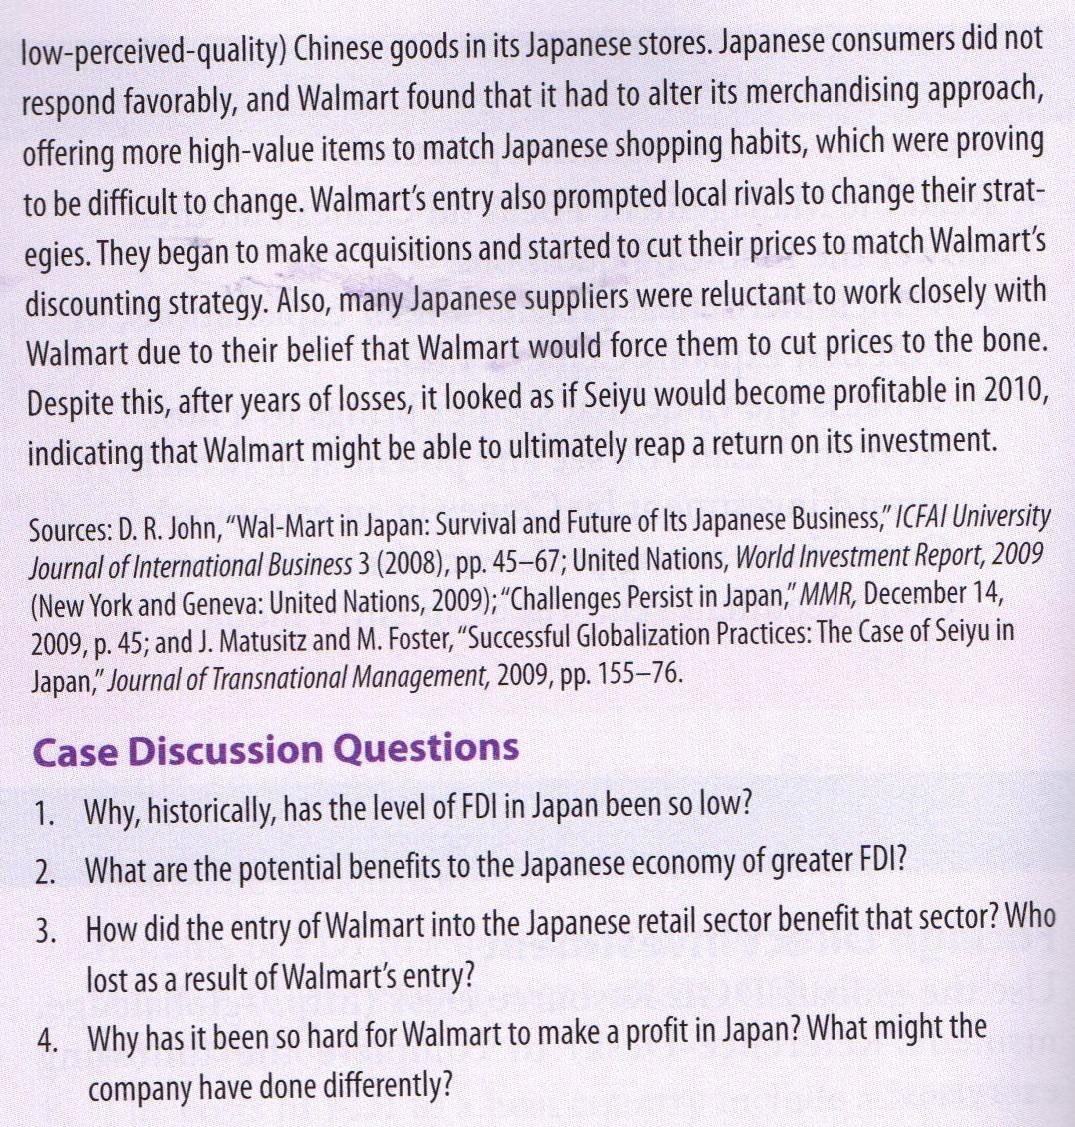 case study bharti walmart essay Sample essay the research revolves around the idea that the entry of retail giants wal-mart is a success or failure in india since wal-mart failed in germany and south korea therefore these failures are identified and kept in mind in the indian expansion.